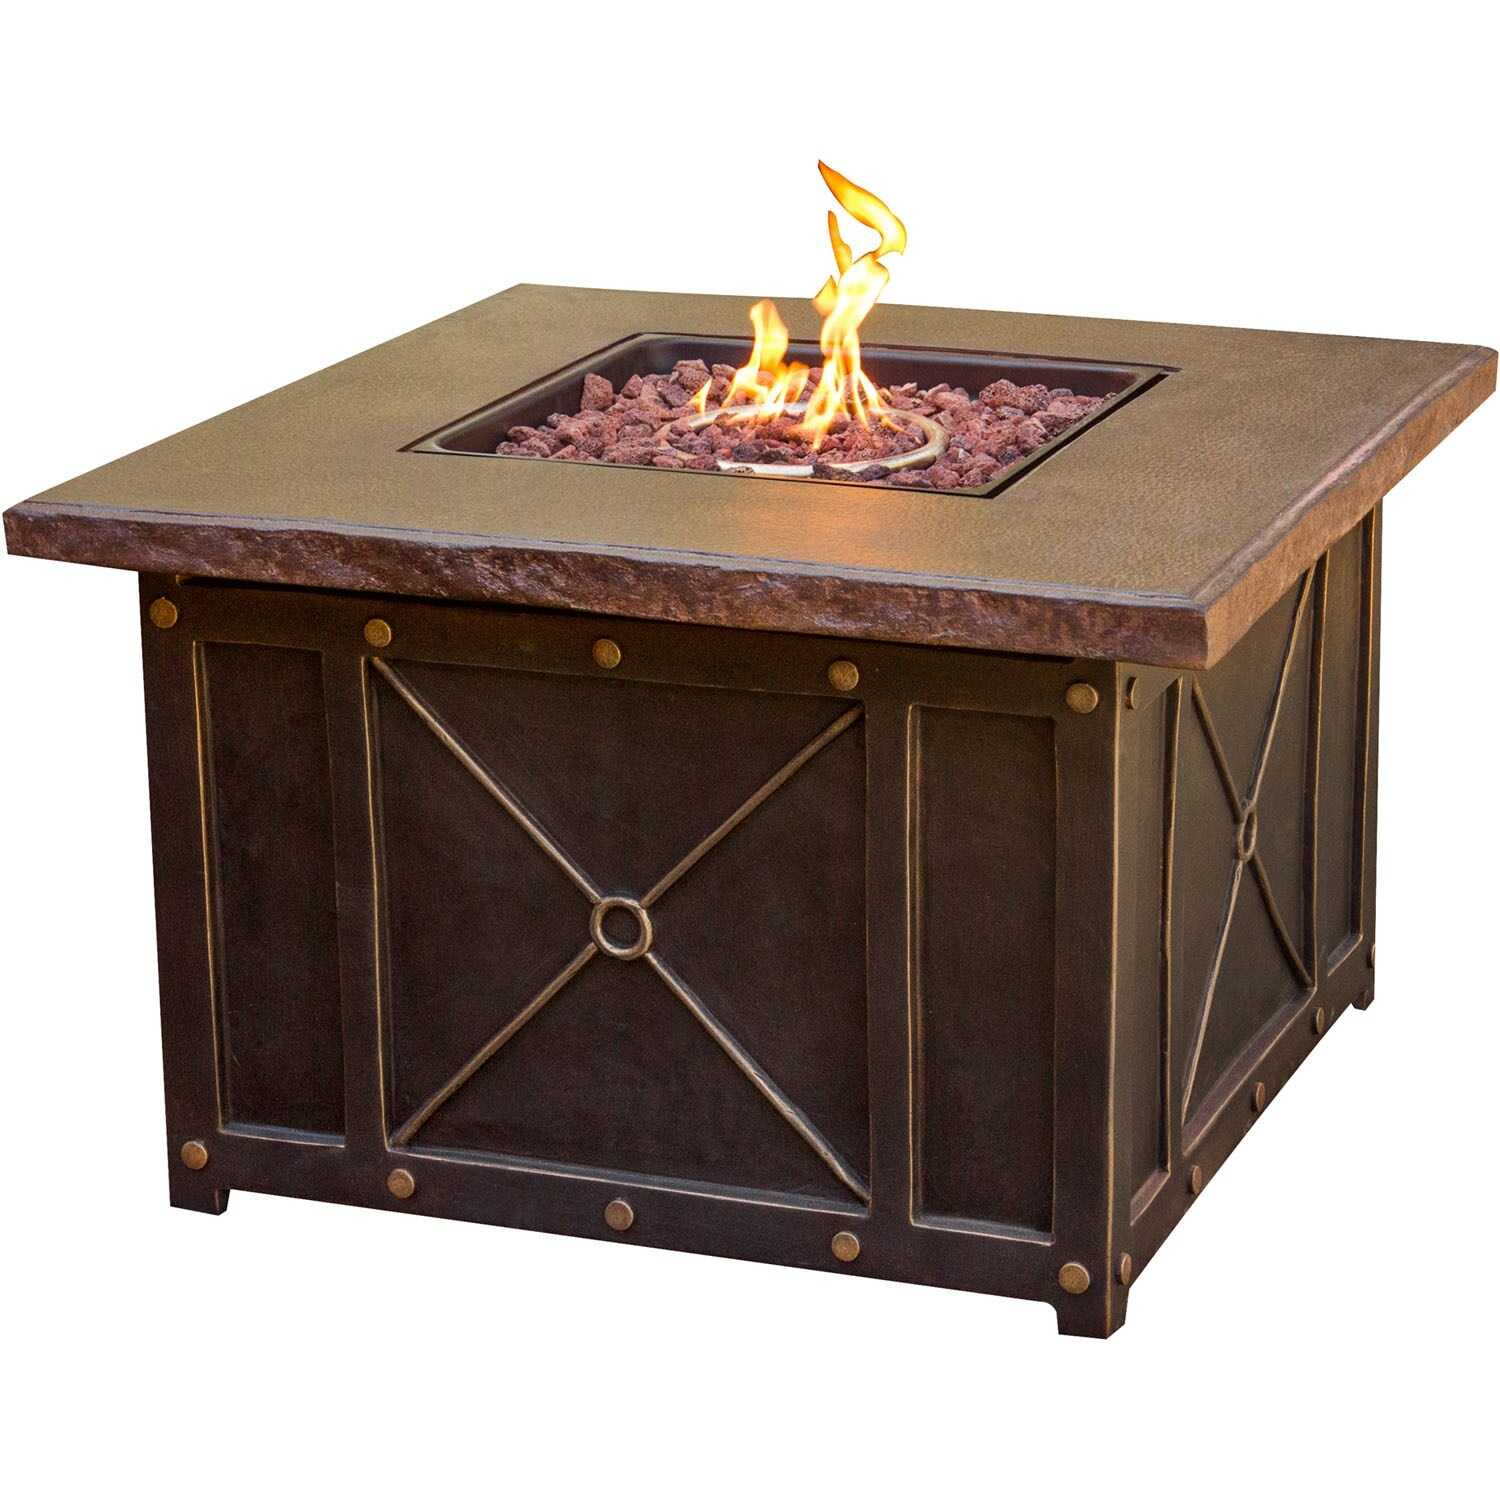 Hanover  5 pc. Brown  Steel  Firepit Set  Tan